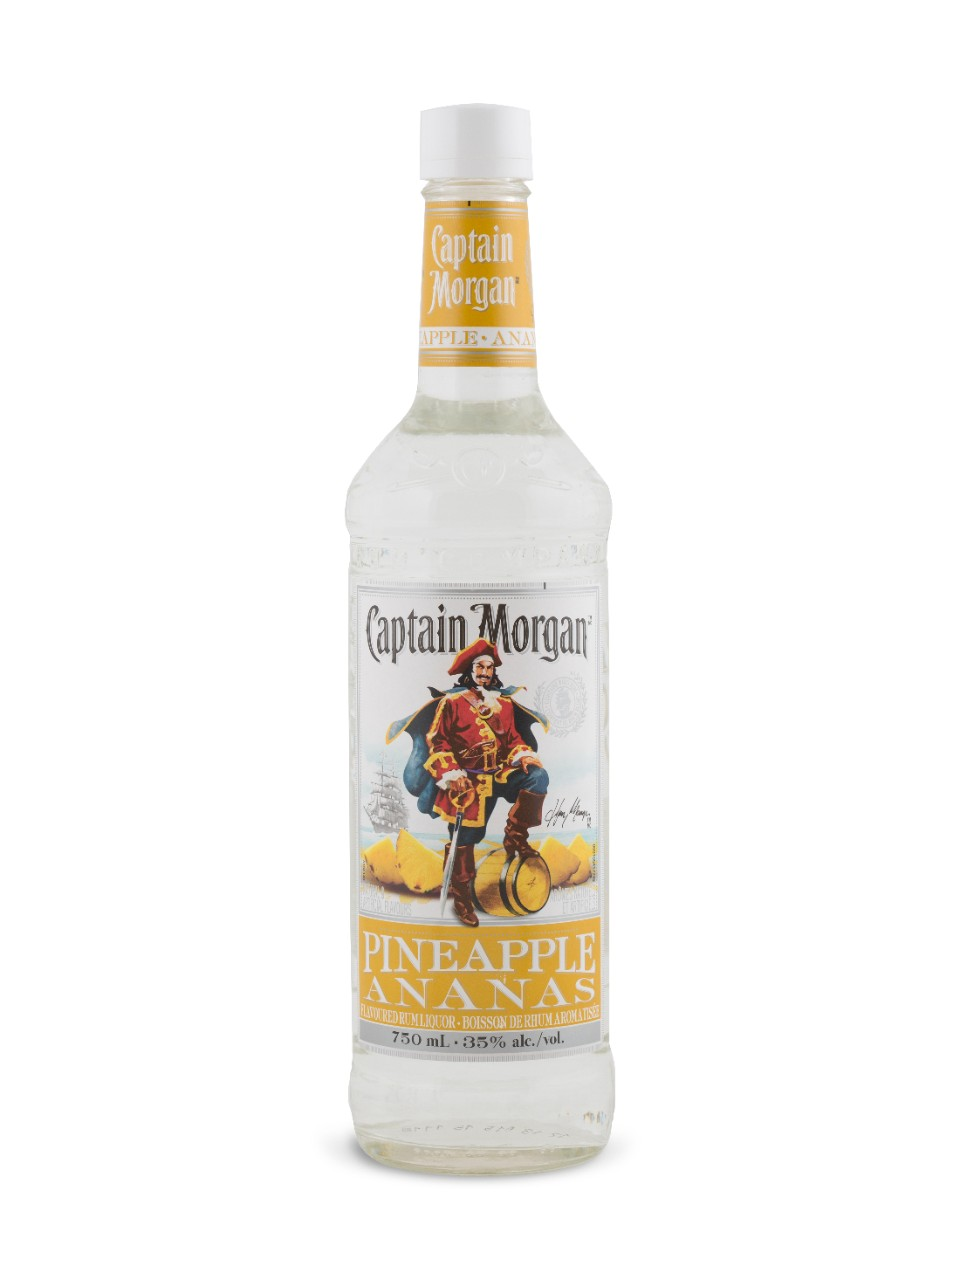 Captain Morgan Pineapple Flavoured Rum Liquor